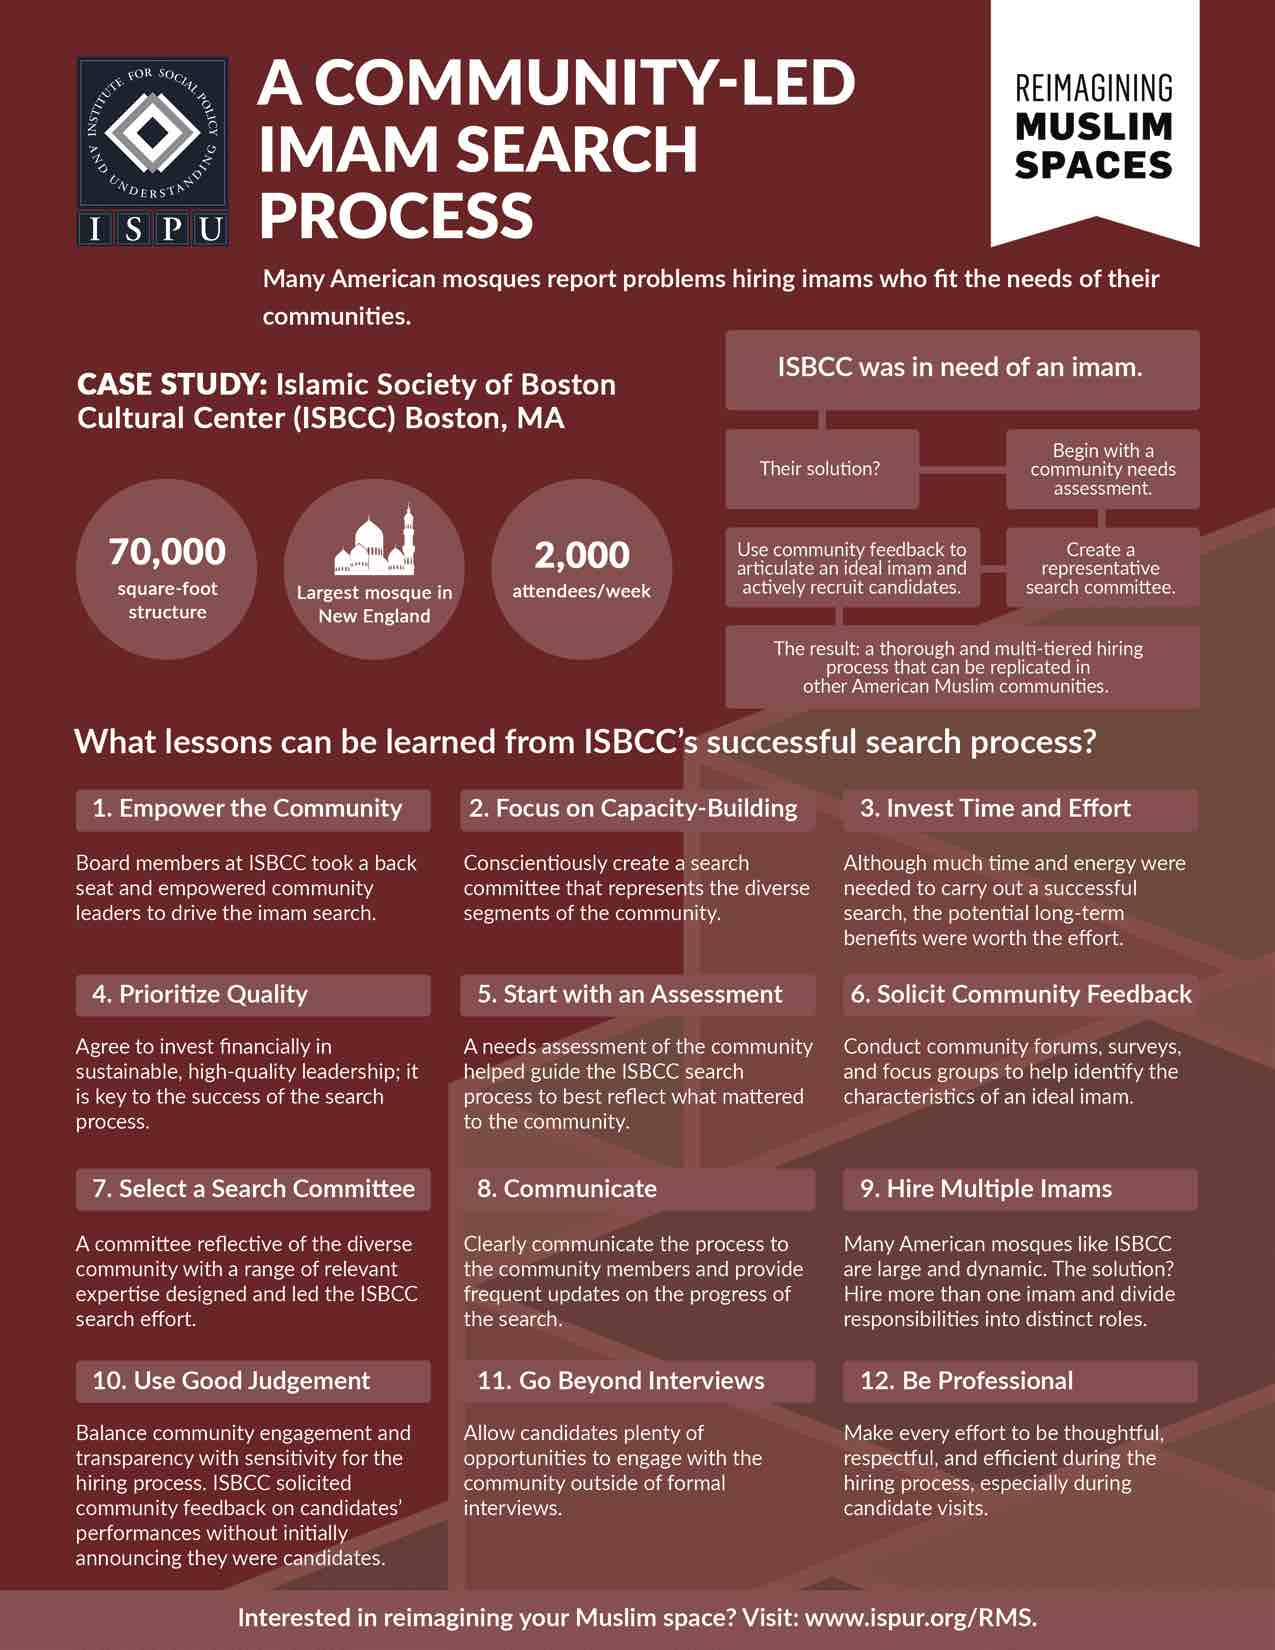 A Community-Led Imam Search Process Infographic